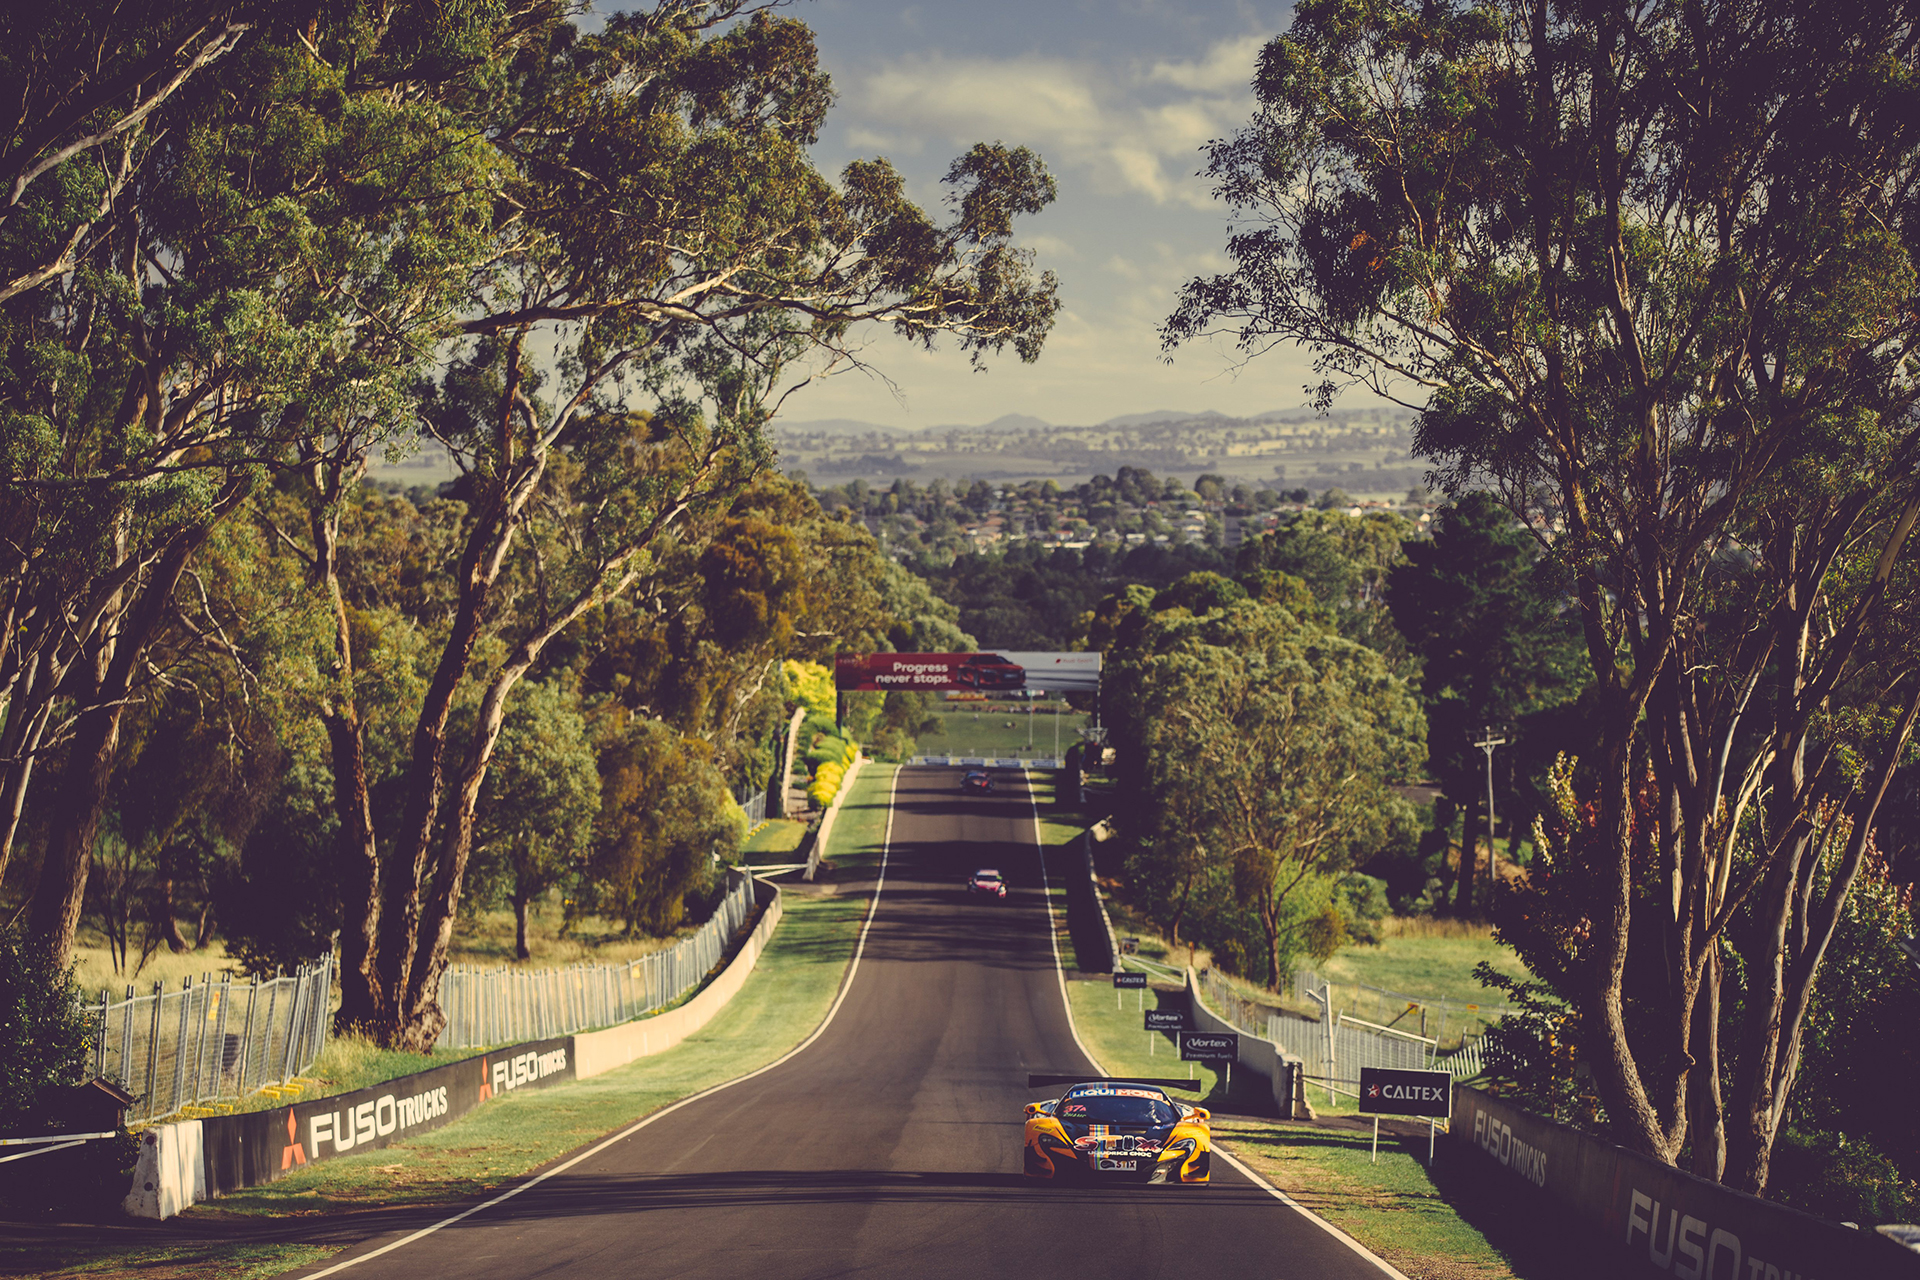 McLaren GT3 - on track - Photo - Bathurst 12hr 2016